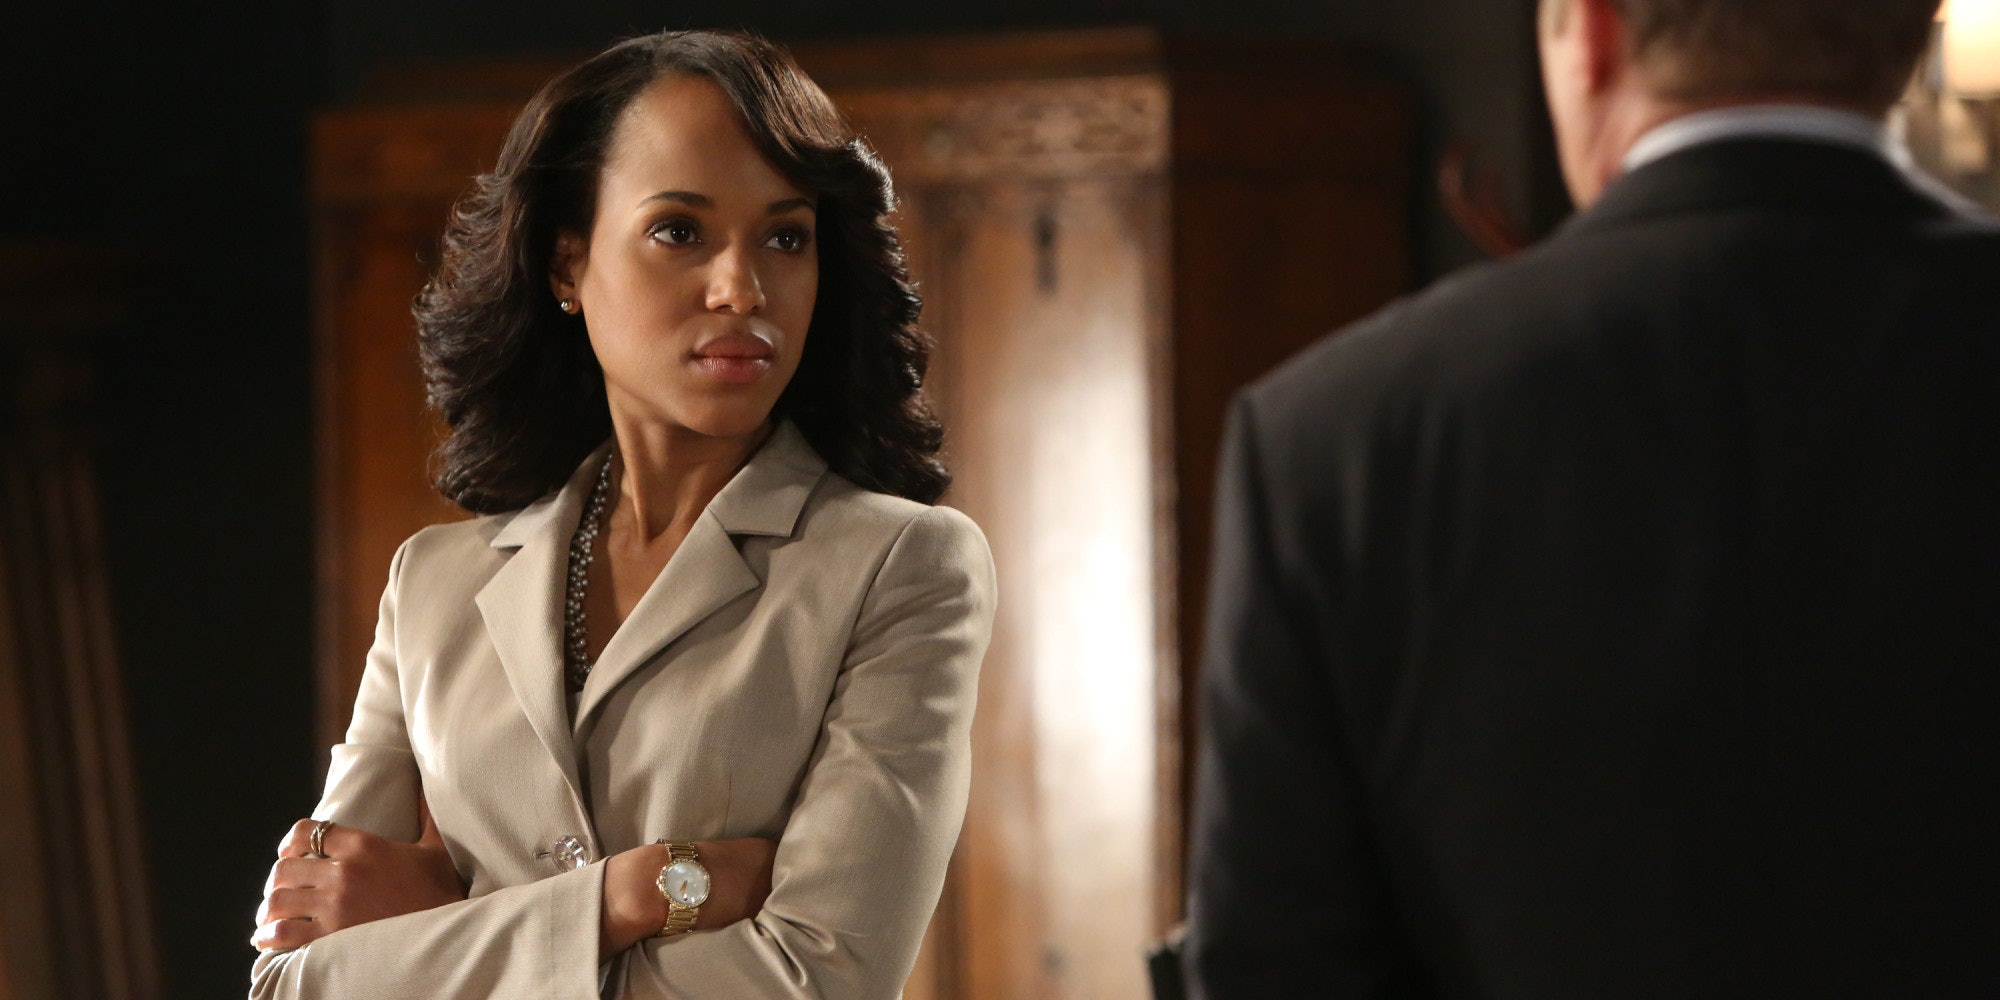 Scandal' Season 4 Looks Intense Already With New, Olivia